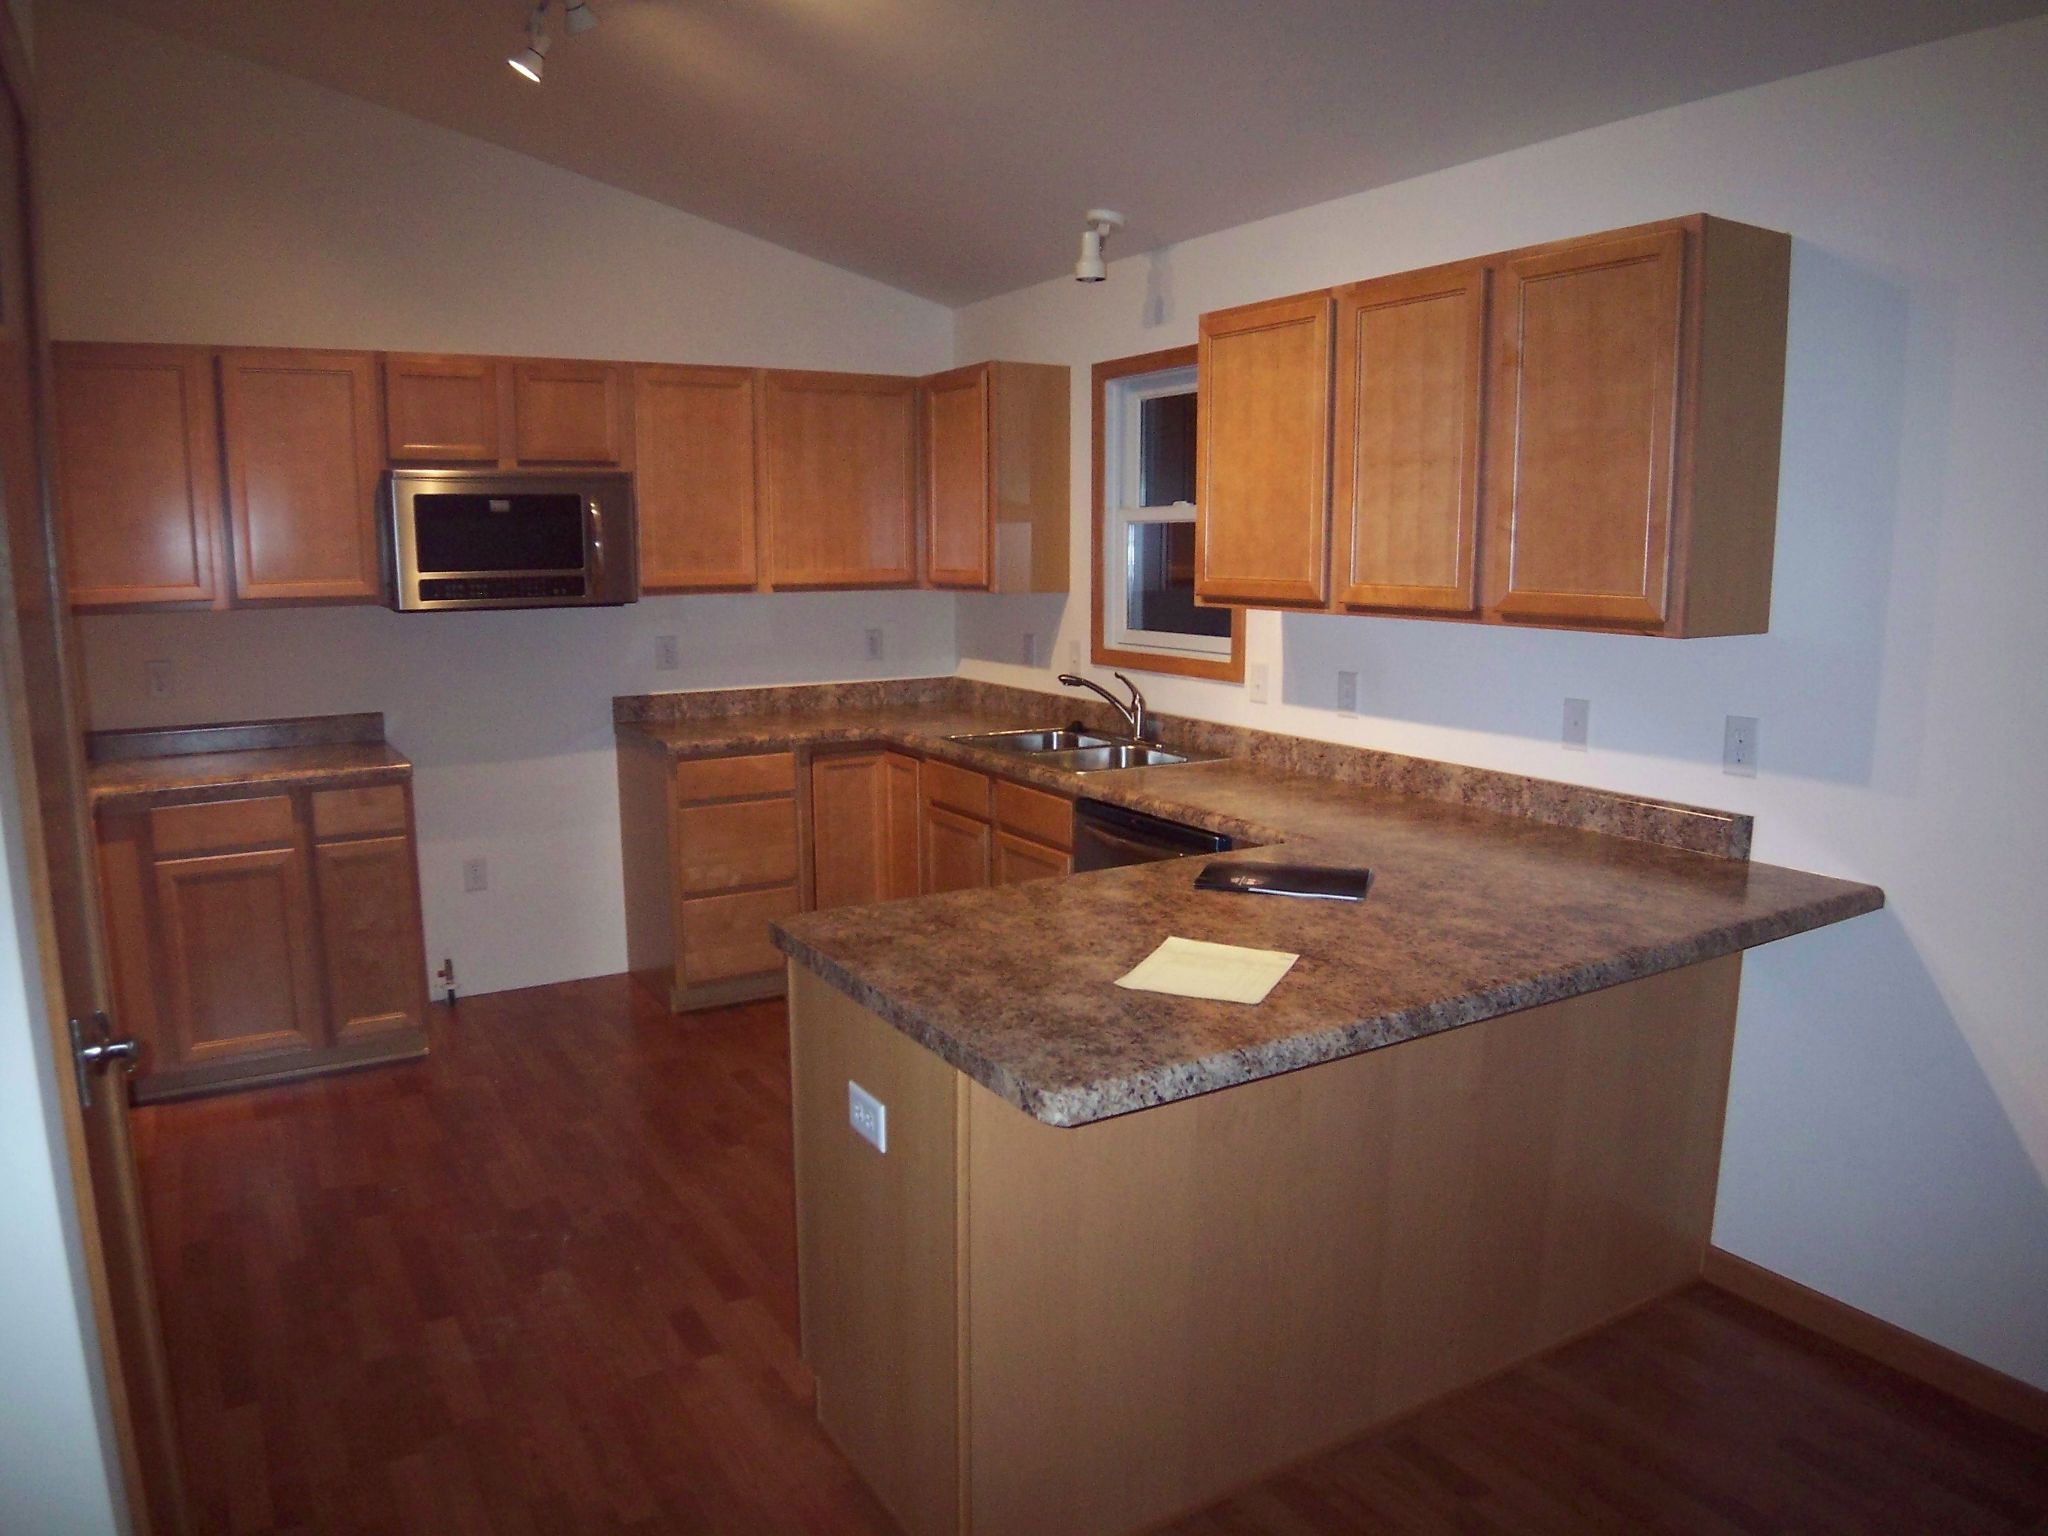 Kitchen featured in the Wellington By Accent Homes Inc. in Gary, IN